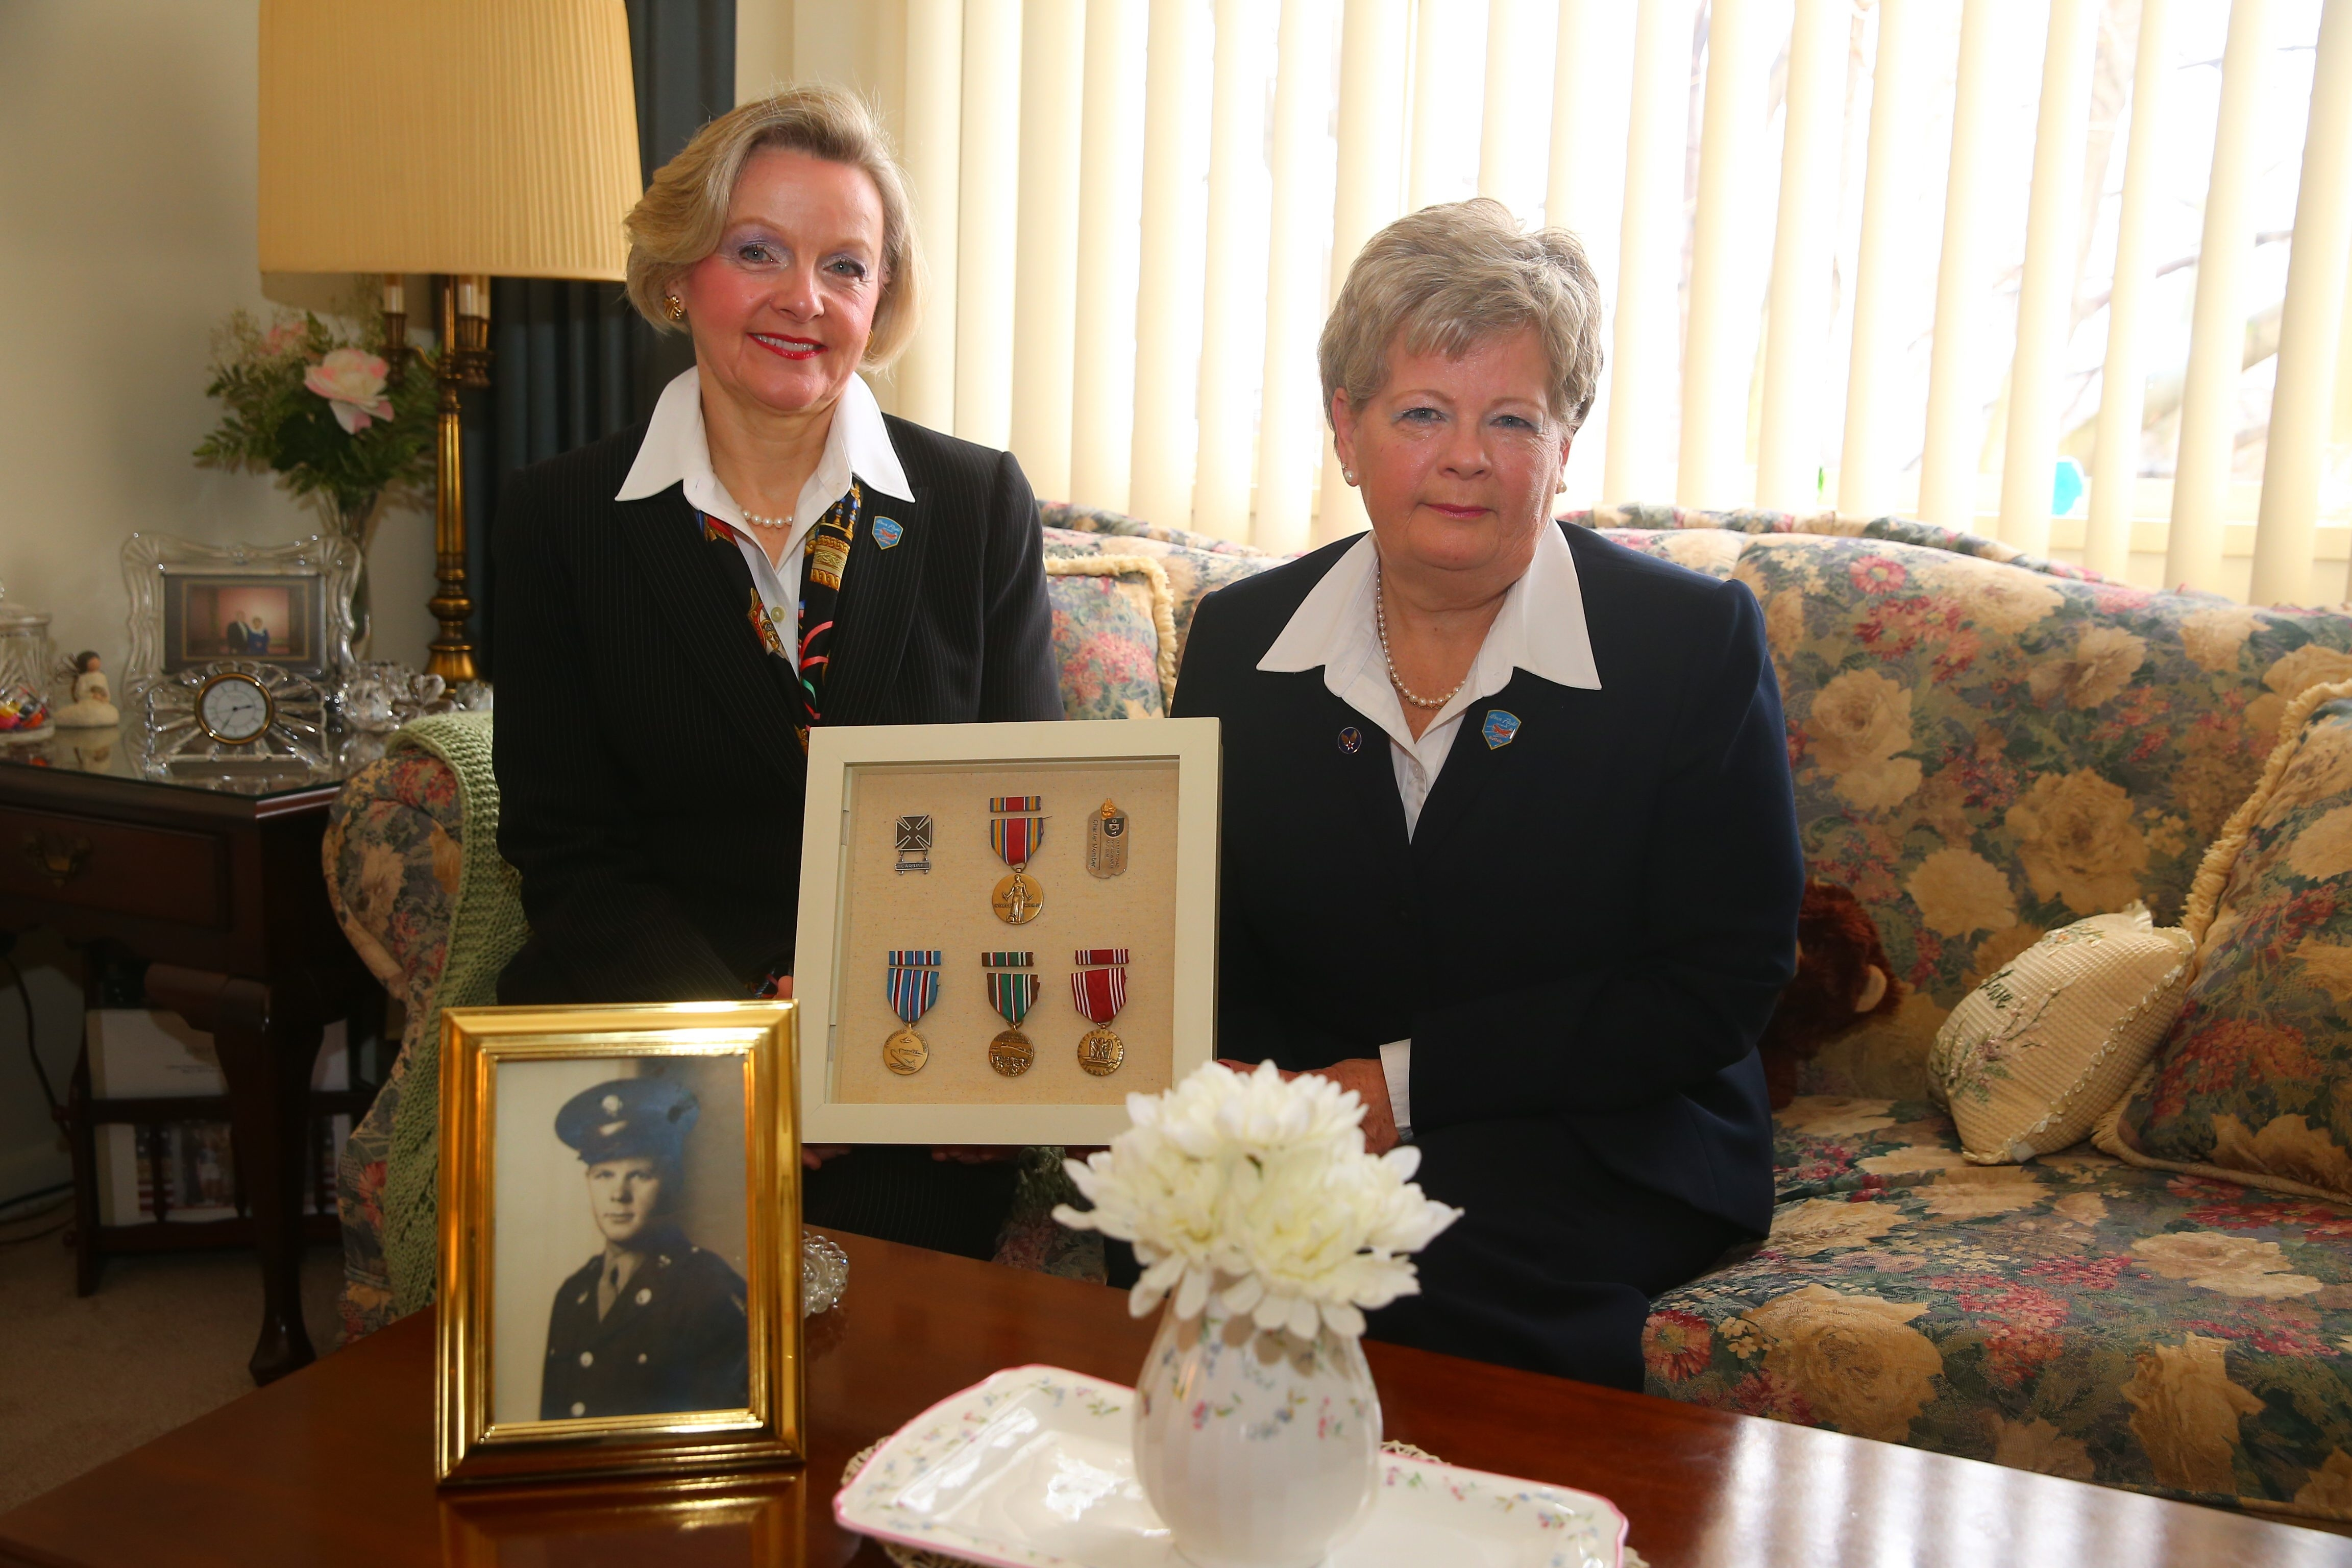 Jo-Anne Wylie, left, and her sister, Lisa, display a photo of their father, Robert P. Wylie, and the medals he earned in World War II. His service inspired their volunteer work.